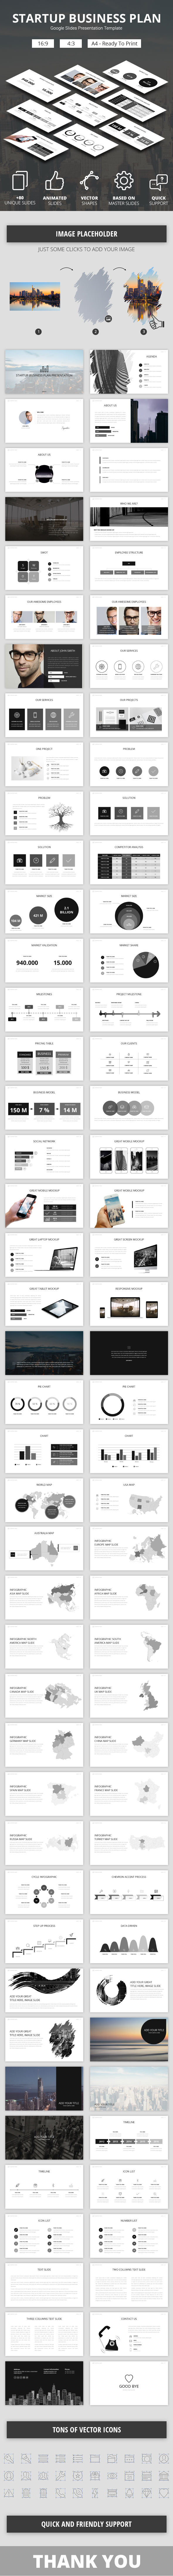 Startup Business Plan Google Slides Presenation Template - Google Slides Presentation Templates